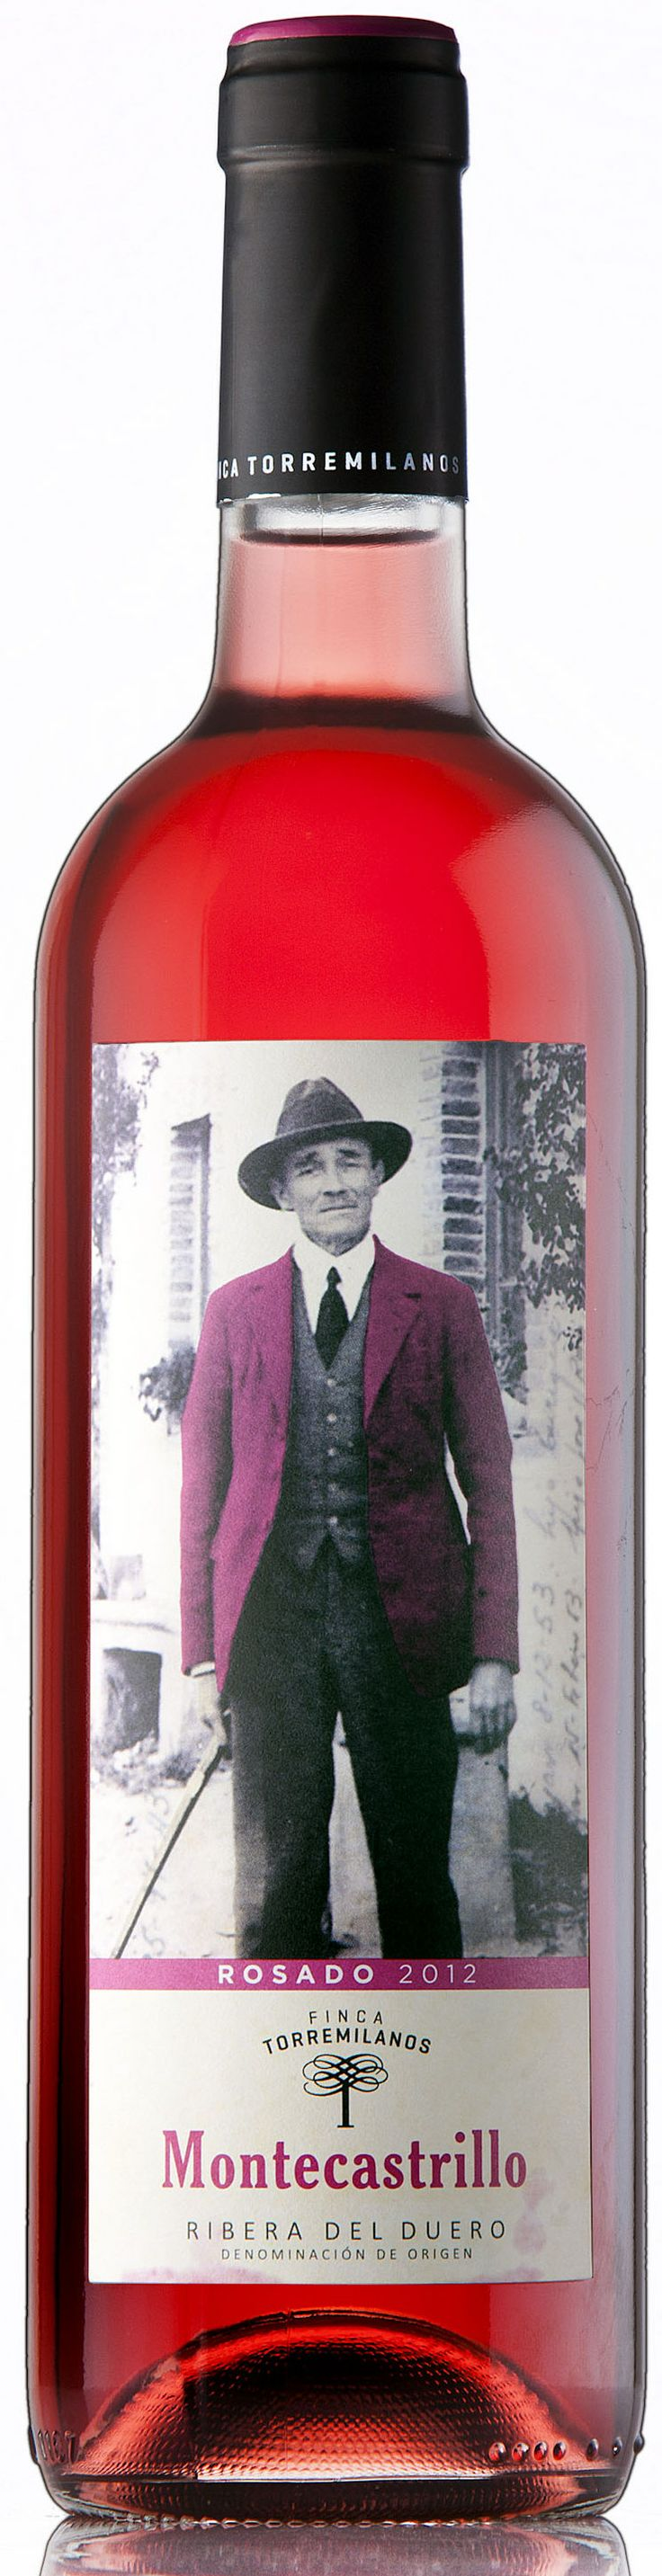 Finca Torremilanos Ribera del Duero Montecastrillo Rosado 2013—an exceptional organic 100% Tempranillo rosé from 20-year-old vines, featuring bold strawberry aroma, clean herbal notes and intriguing minerality; a steal at PLN 33 from Warsaw's El Catador